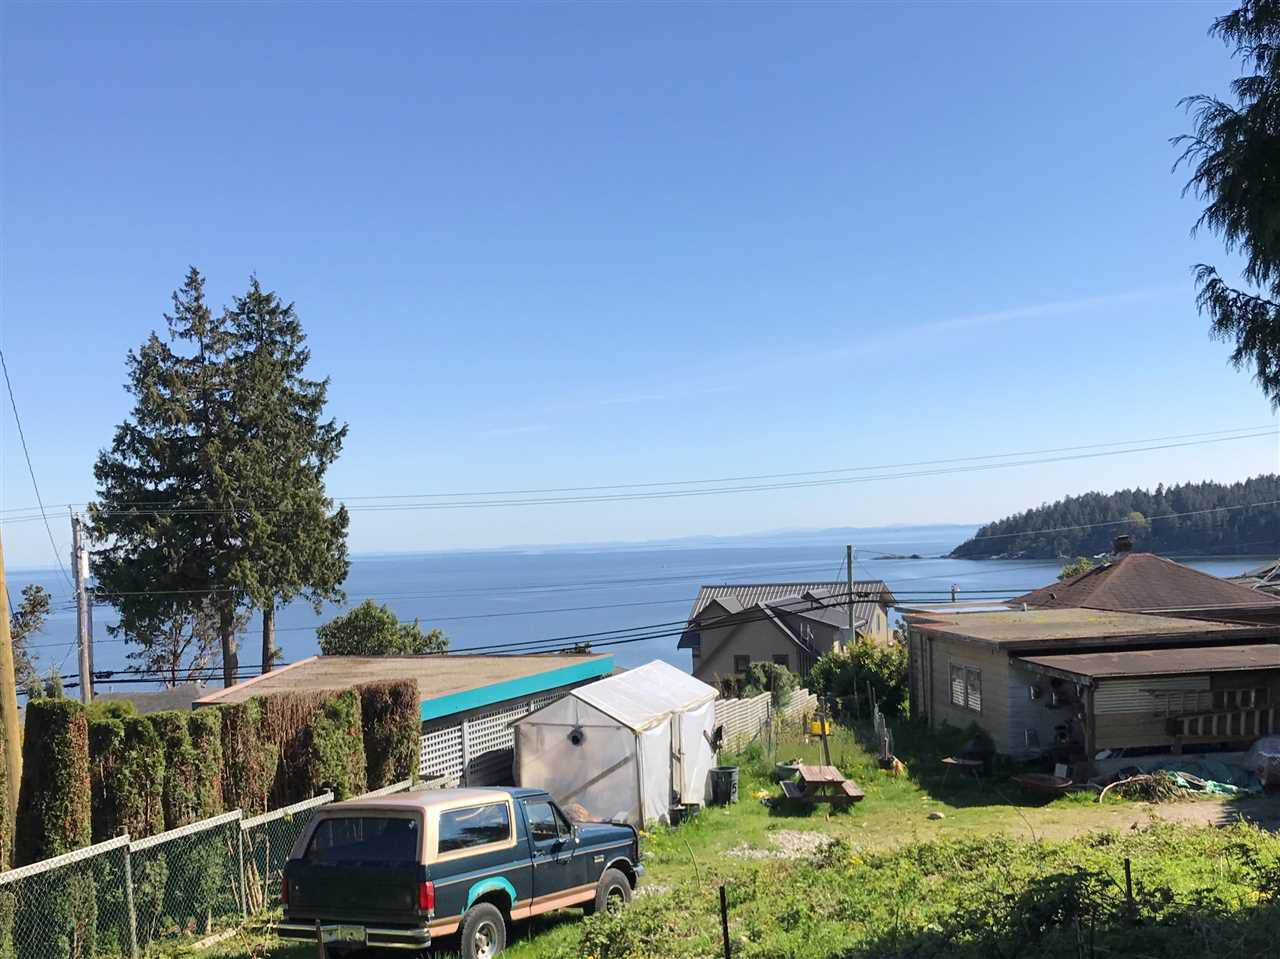 Main Photo: 6220 SUNSHINE COAST Highway in Sechelt: Sechelt District House for sale (Sunshine Coast)  : MLS®# R2140615